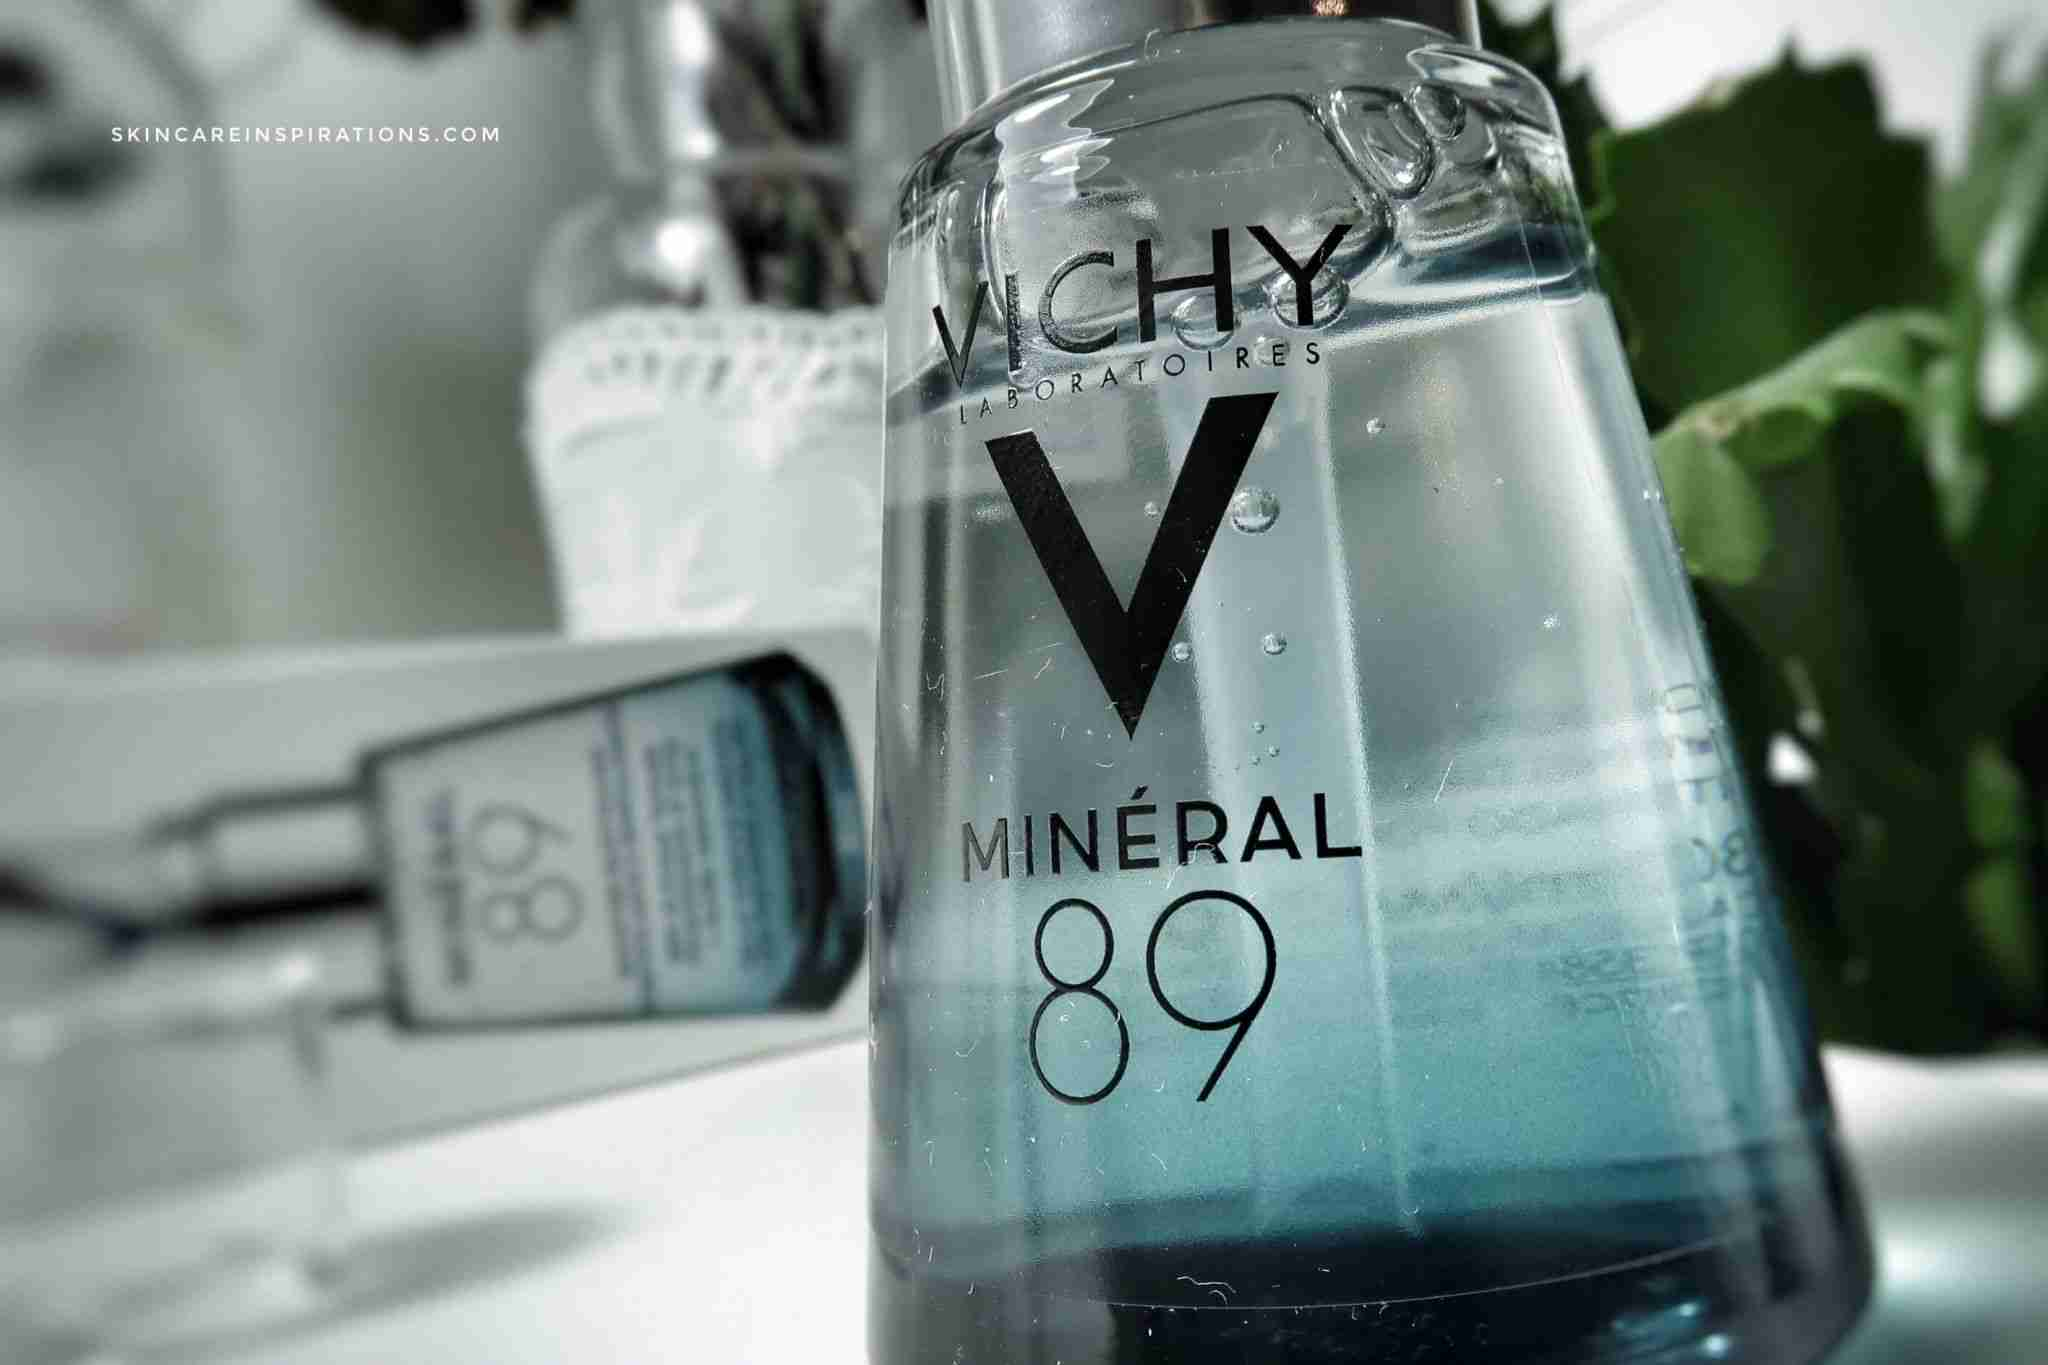 Vichy Mineral 89 Booster Review